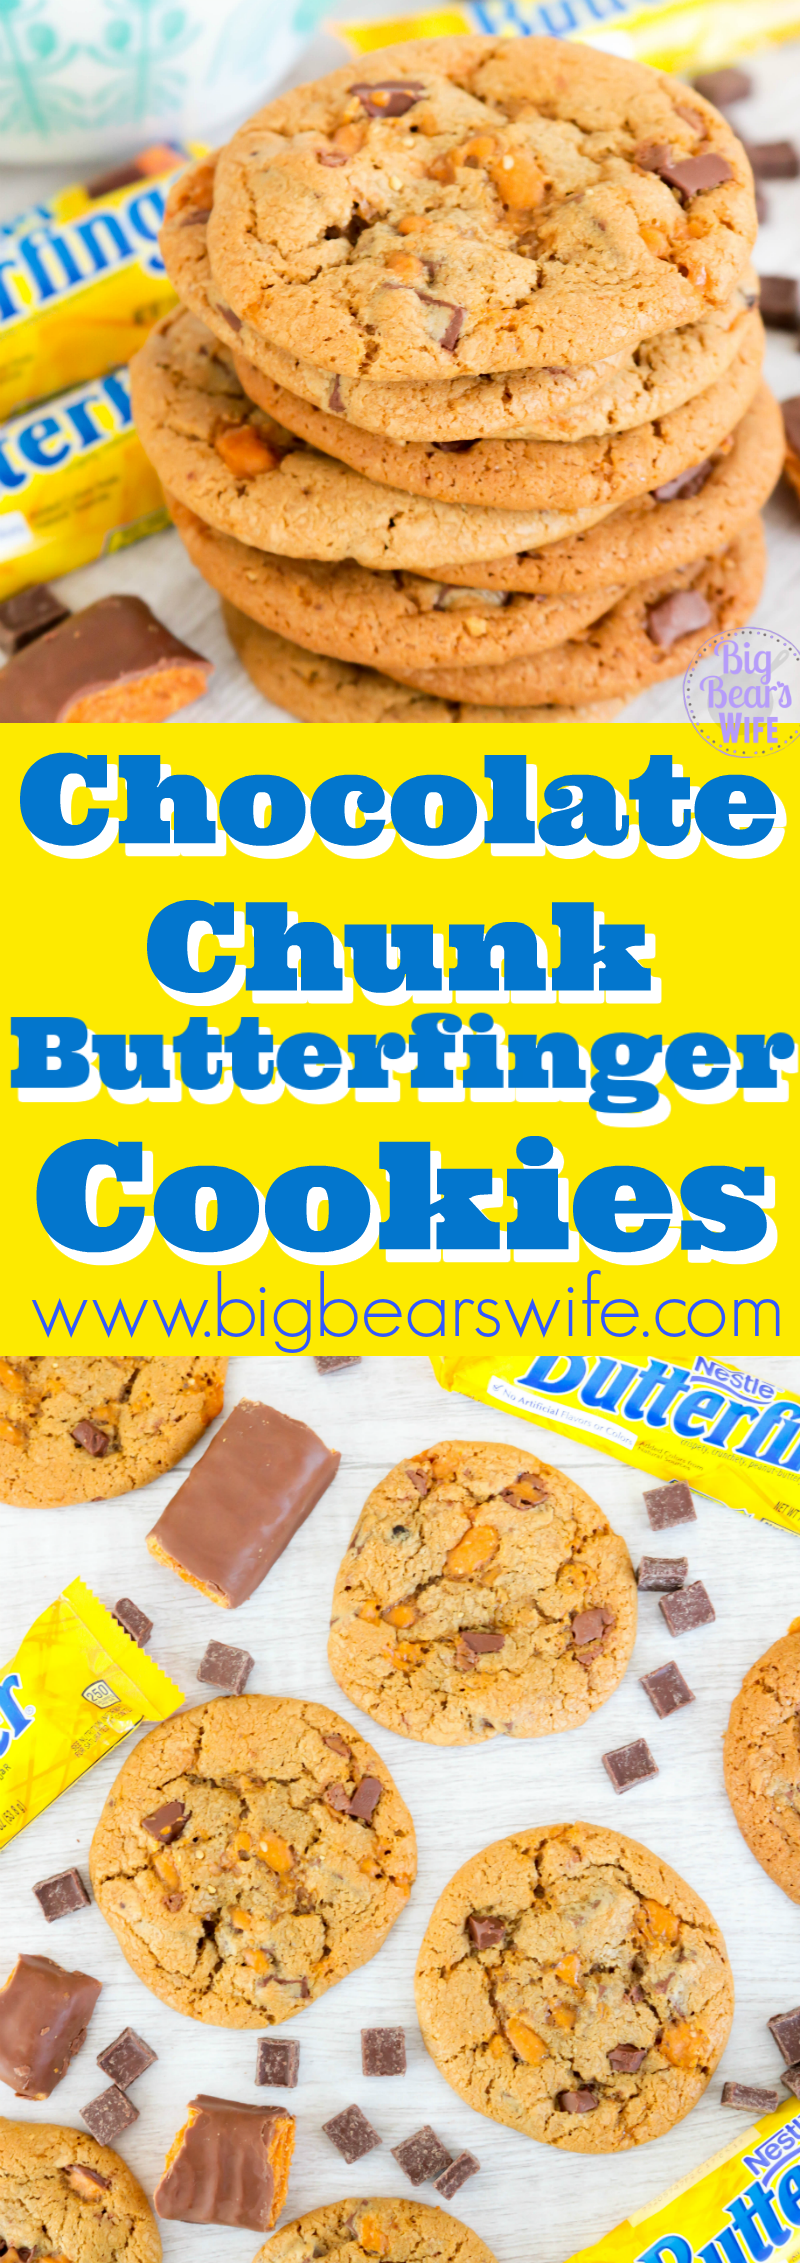 Chocolate Chunk Butterfinger Cookies - These Chocolate Chunk Butterfinger Cookies are soft and chewy cookies packed with chocolate chunks and chopped Butterfinger Candy Bars. One bite of these and you'll feel like a kid in a candy store!!